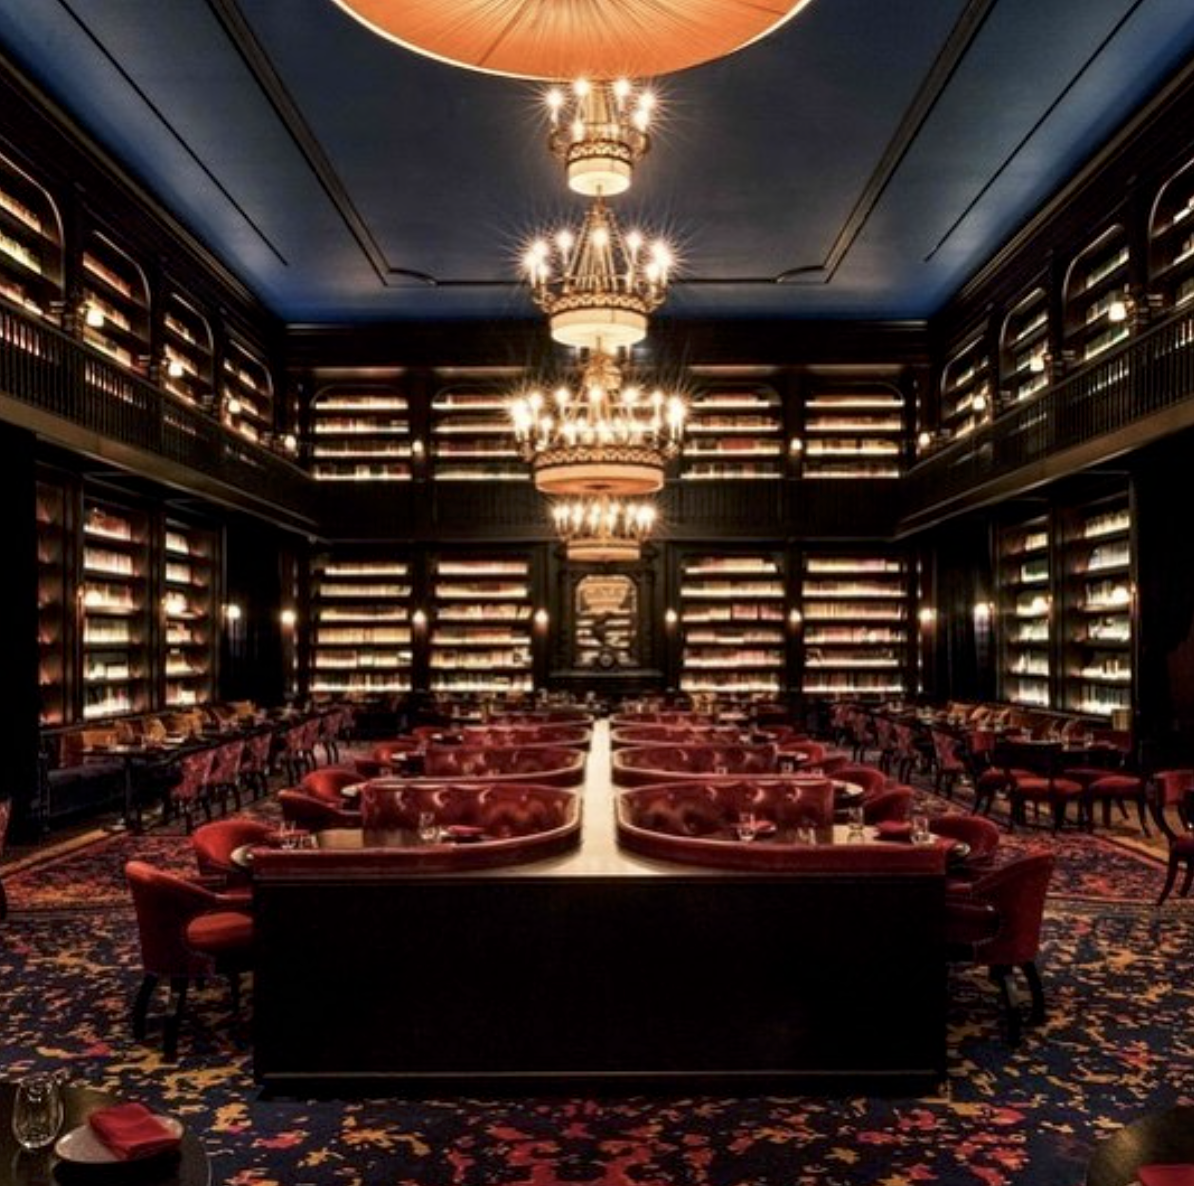 Nomad Hotel @MGM